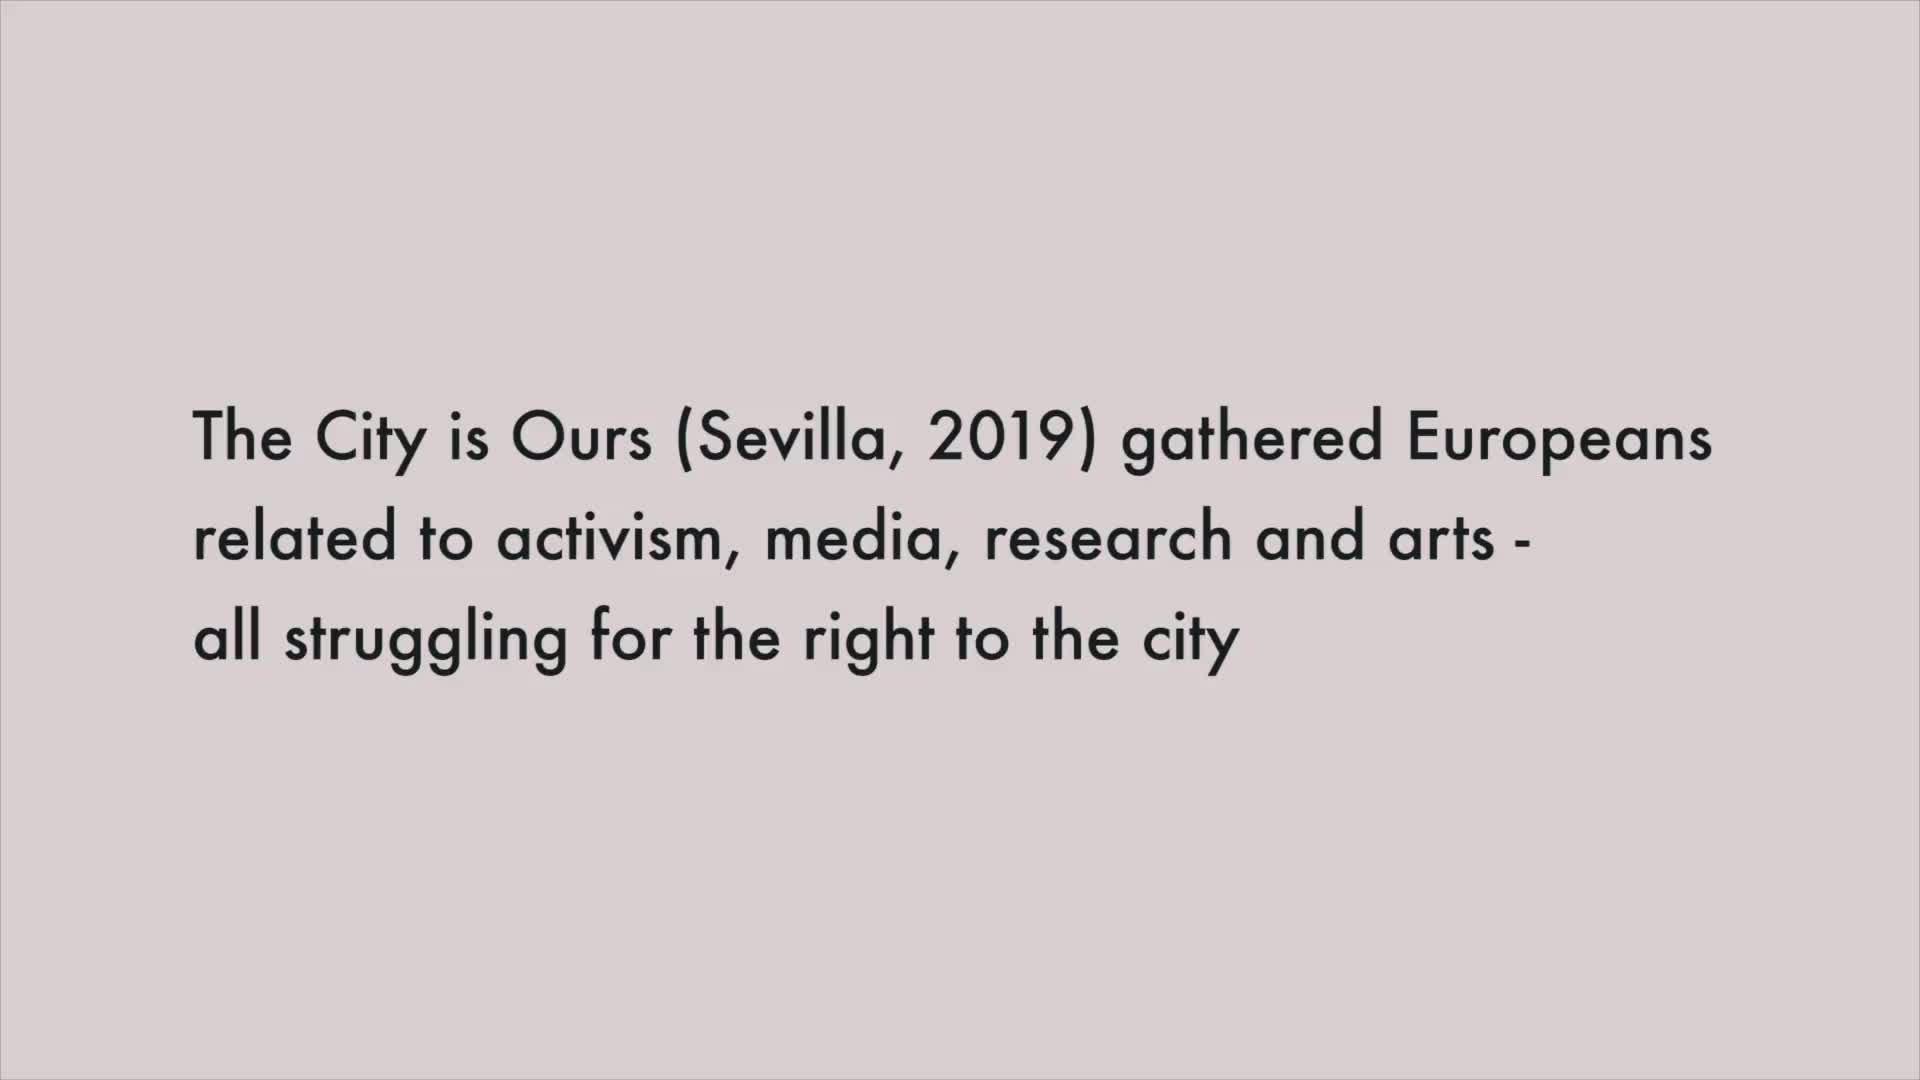 The City is Ours: Mediactivism Hackcamp in Seville